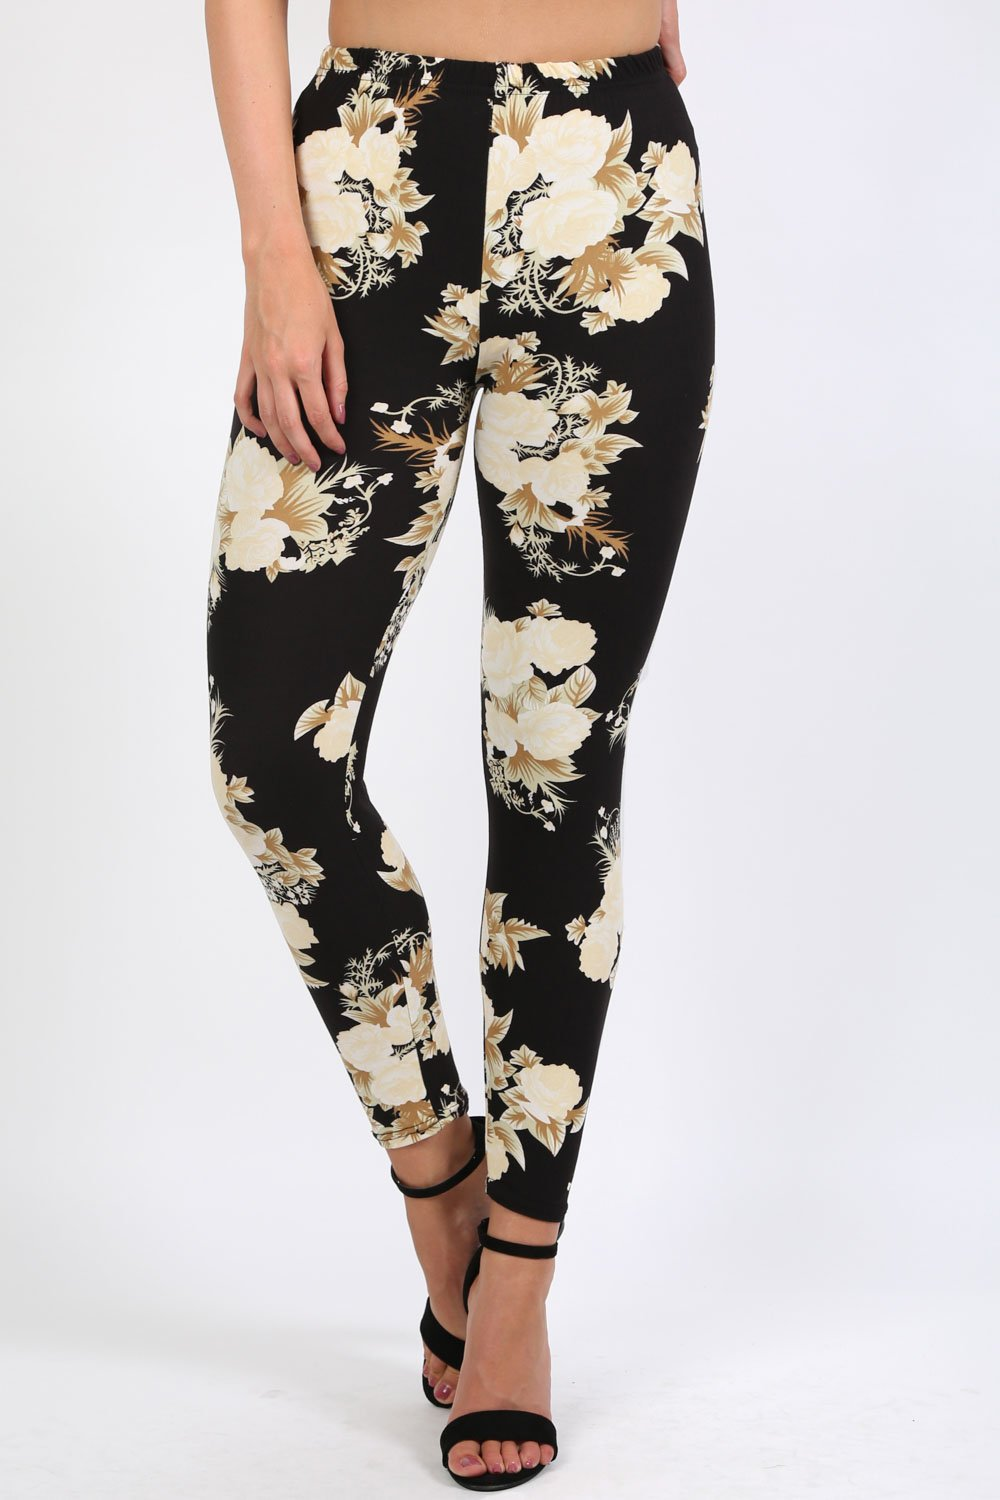 Floral Print Design Leggings in Black 0